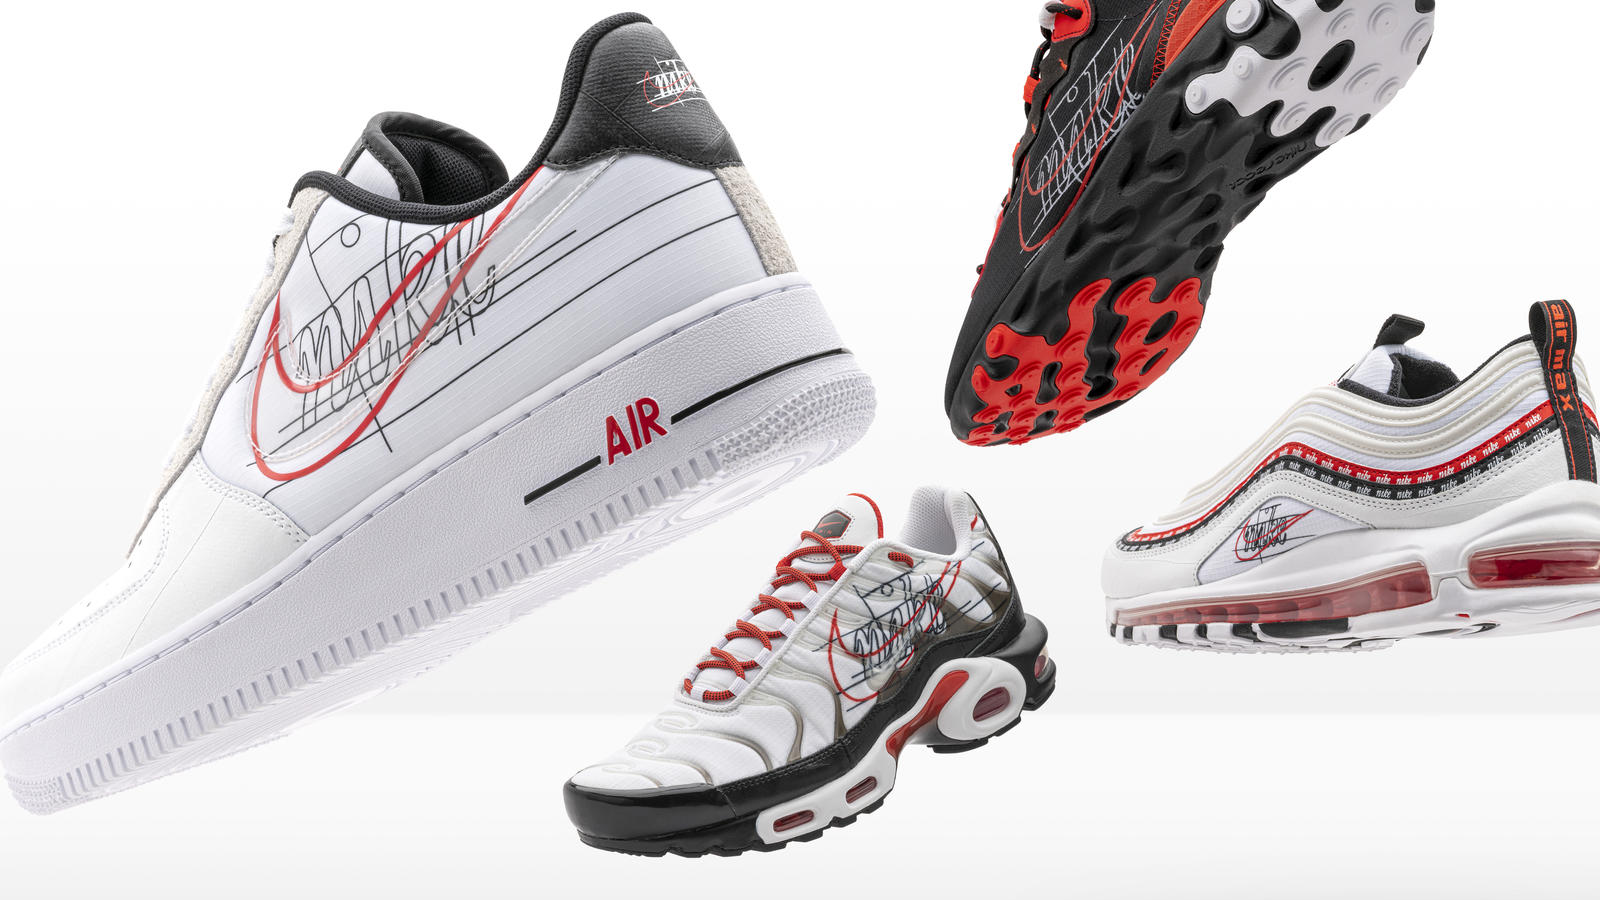 Nike And Foot Locker Inc Evolution Of Swoosh Air Force 1 Air Max